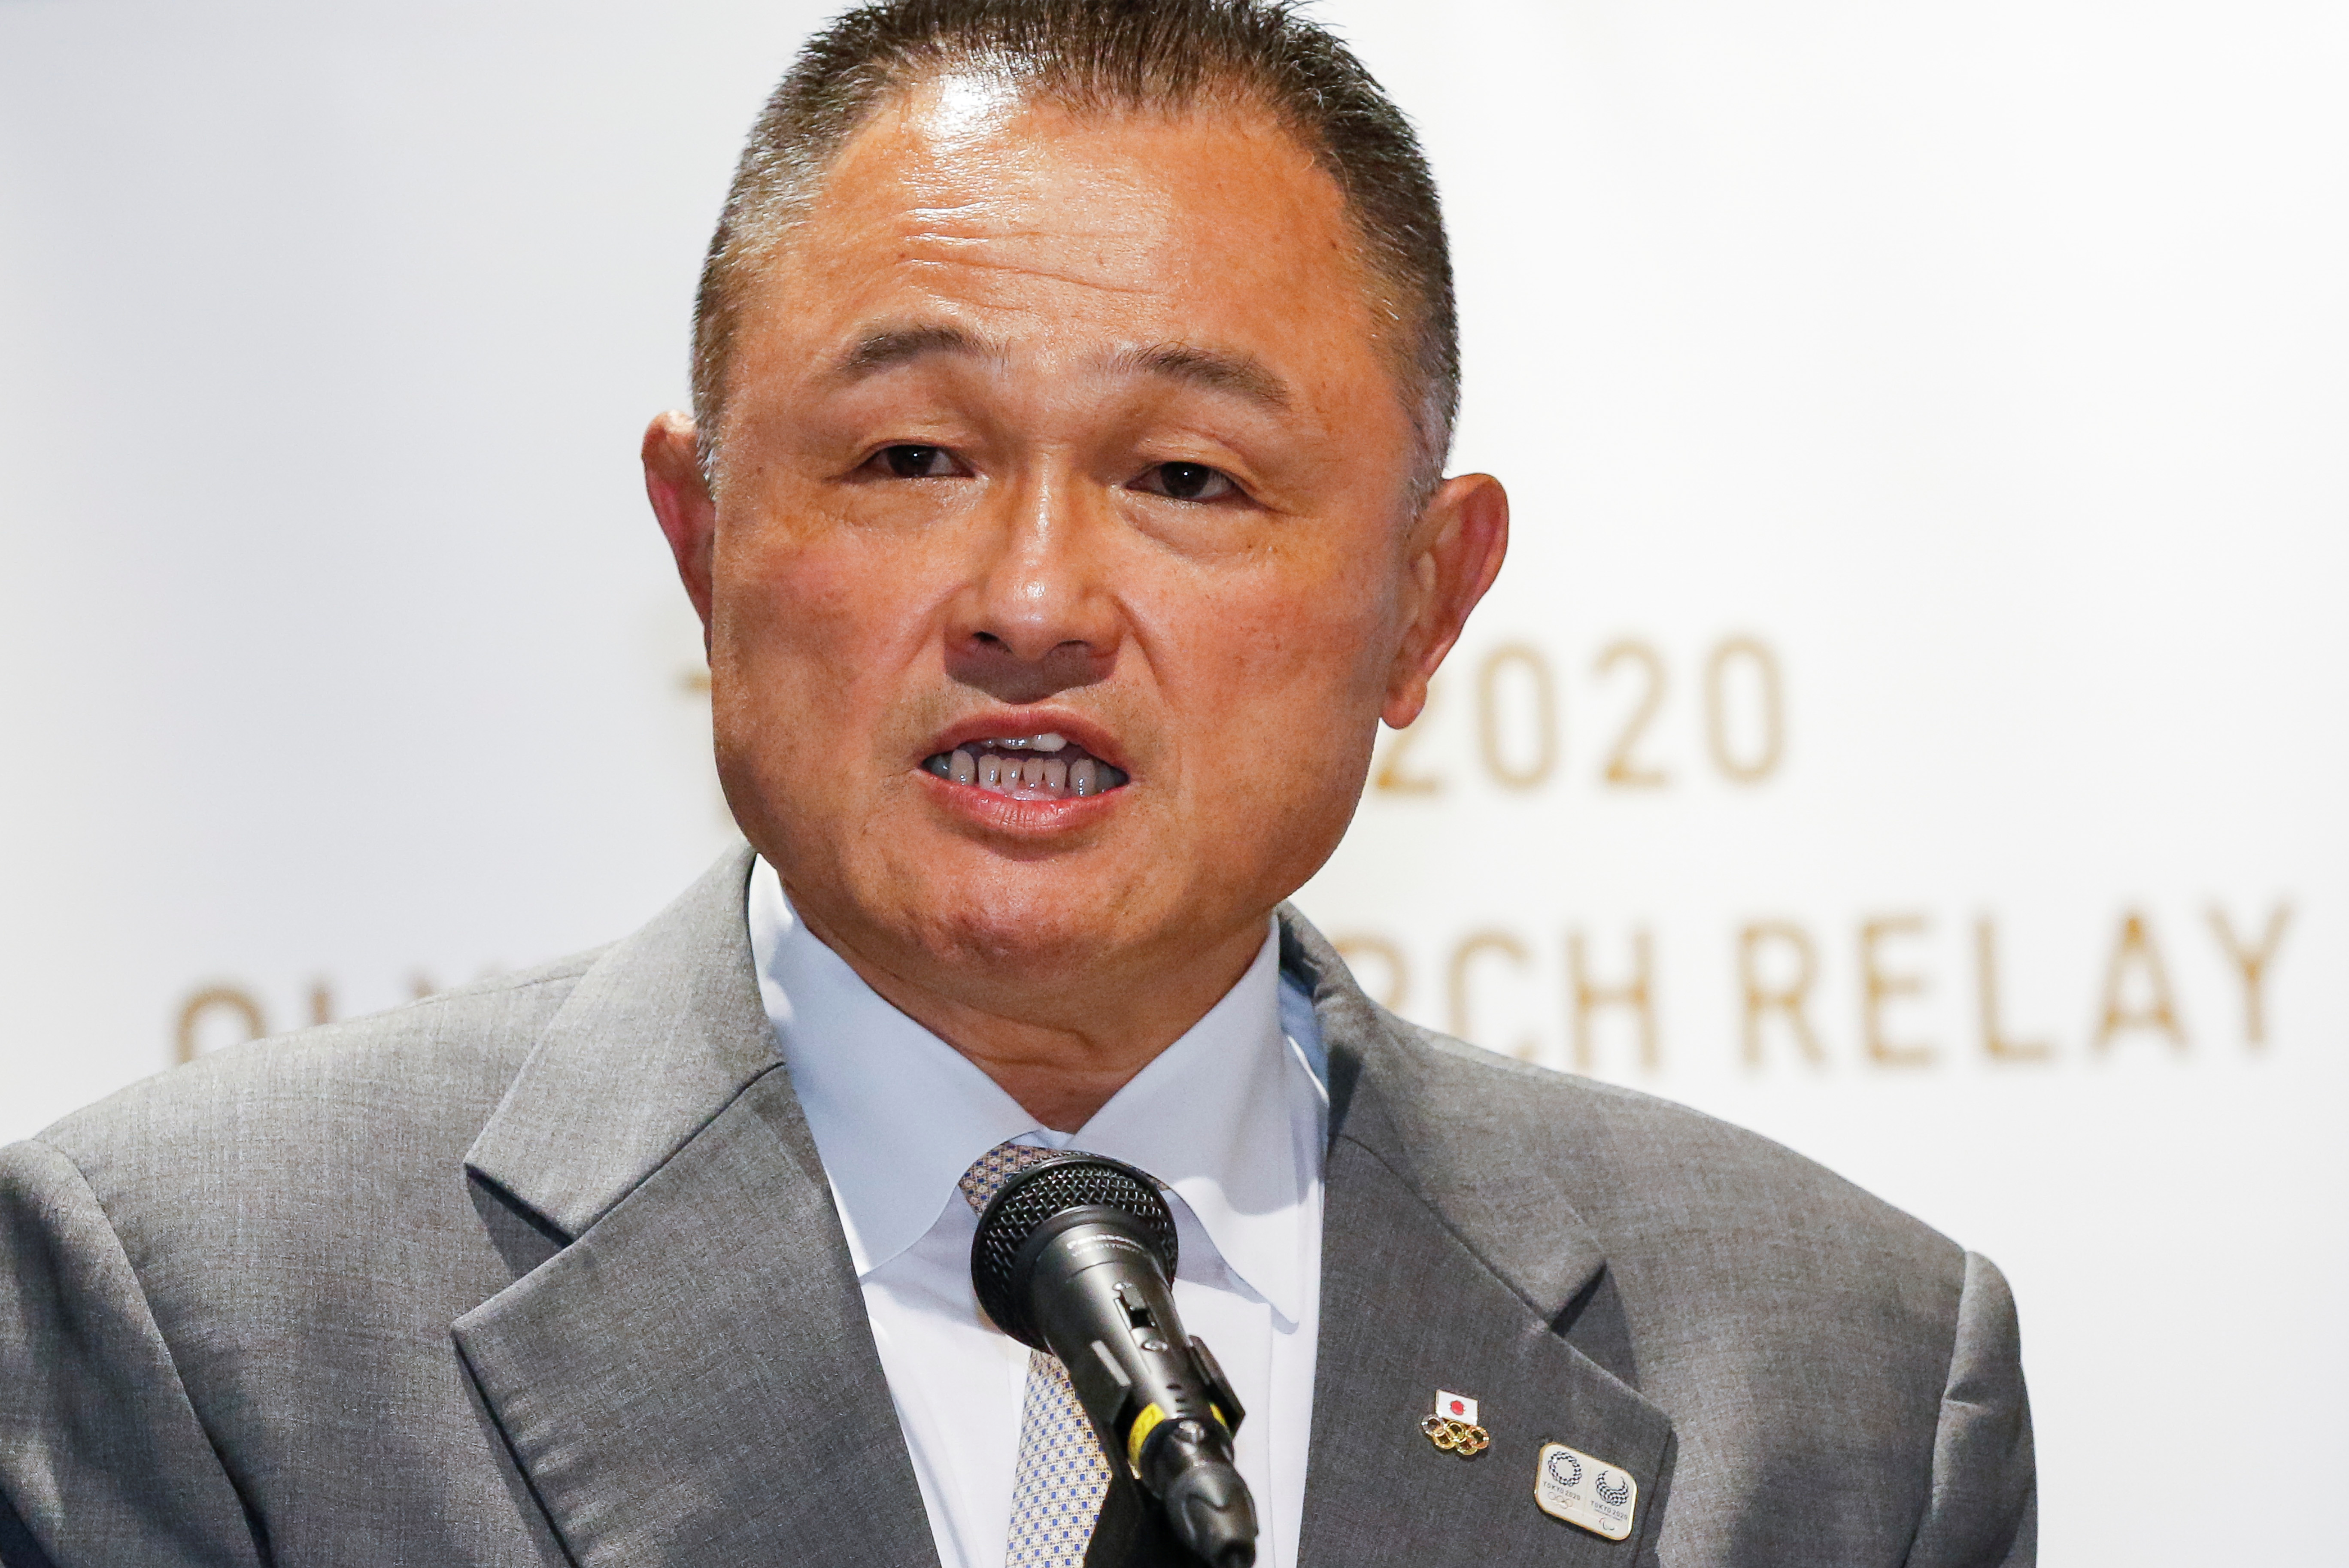 Yasuhiro Yamashita, President of Japanese Olympic Committee (JOC), delivers a speech during the the display ceremony for the Olympic Flame at the Olympic Museum in Tokyo, Japan August 31, 2020. Rodrigo Reyes Marin/Pool via REUTERS